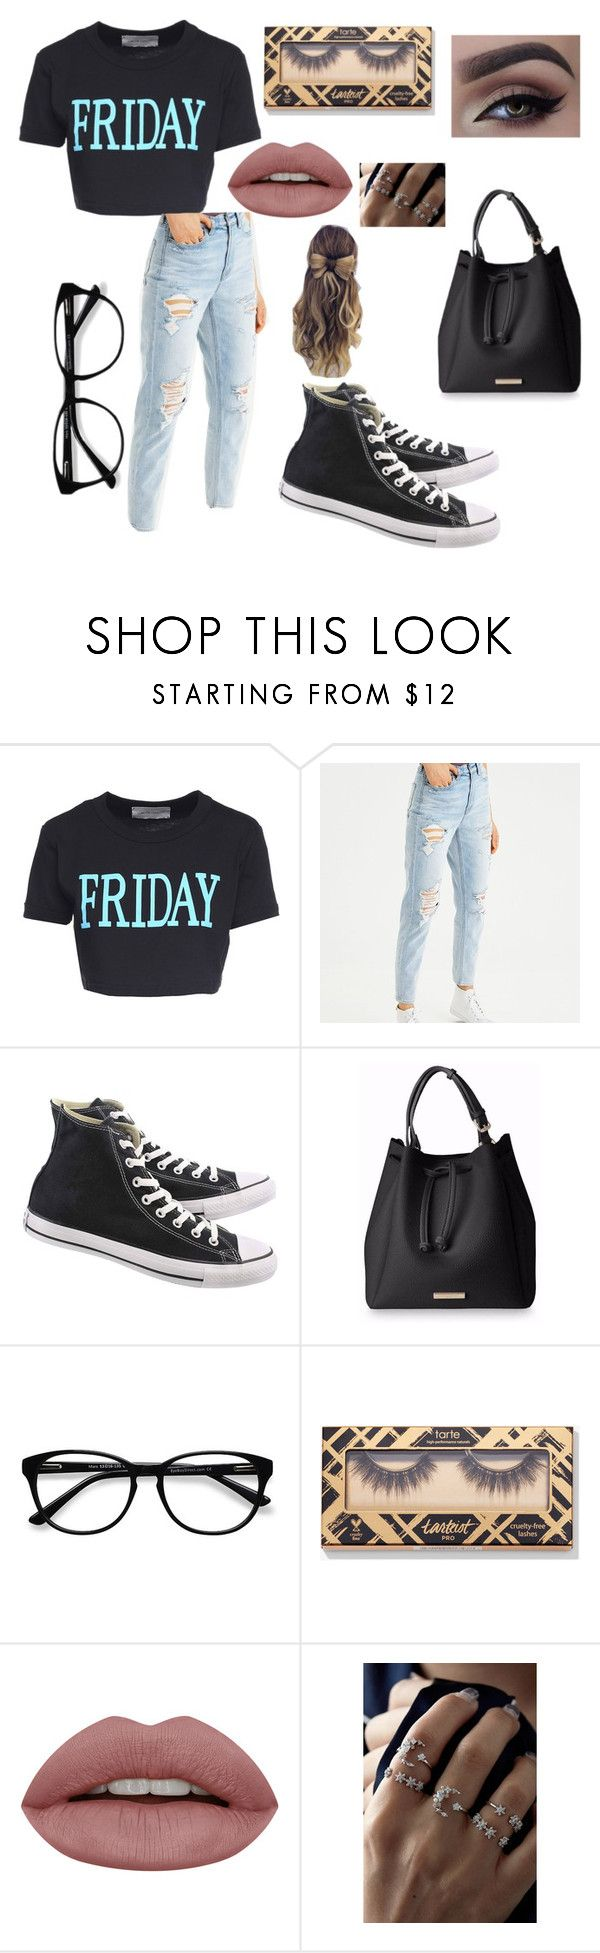 """""""Casual dinner outfit"""" by sissyshelby ❤ liked on Polyvore featuring Alberta Ferretti, American Eagle Outfitters, Converse and EyeBuyDirect.com"""